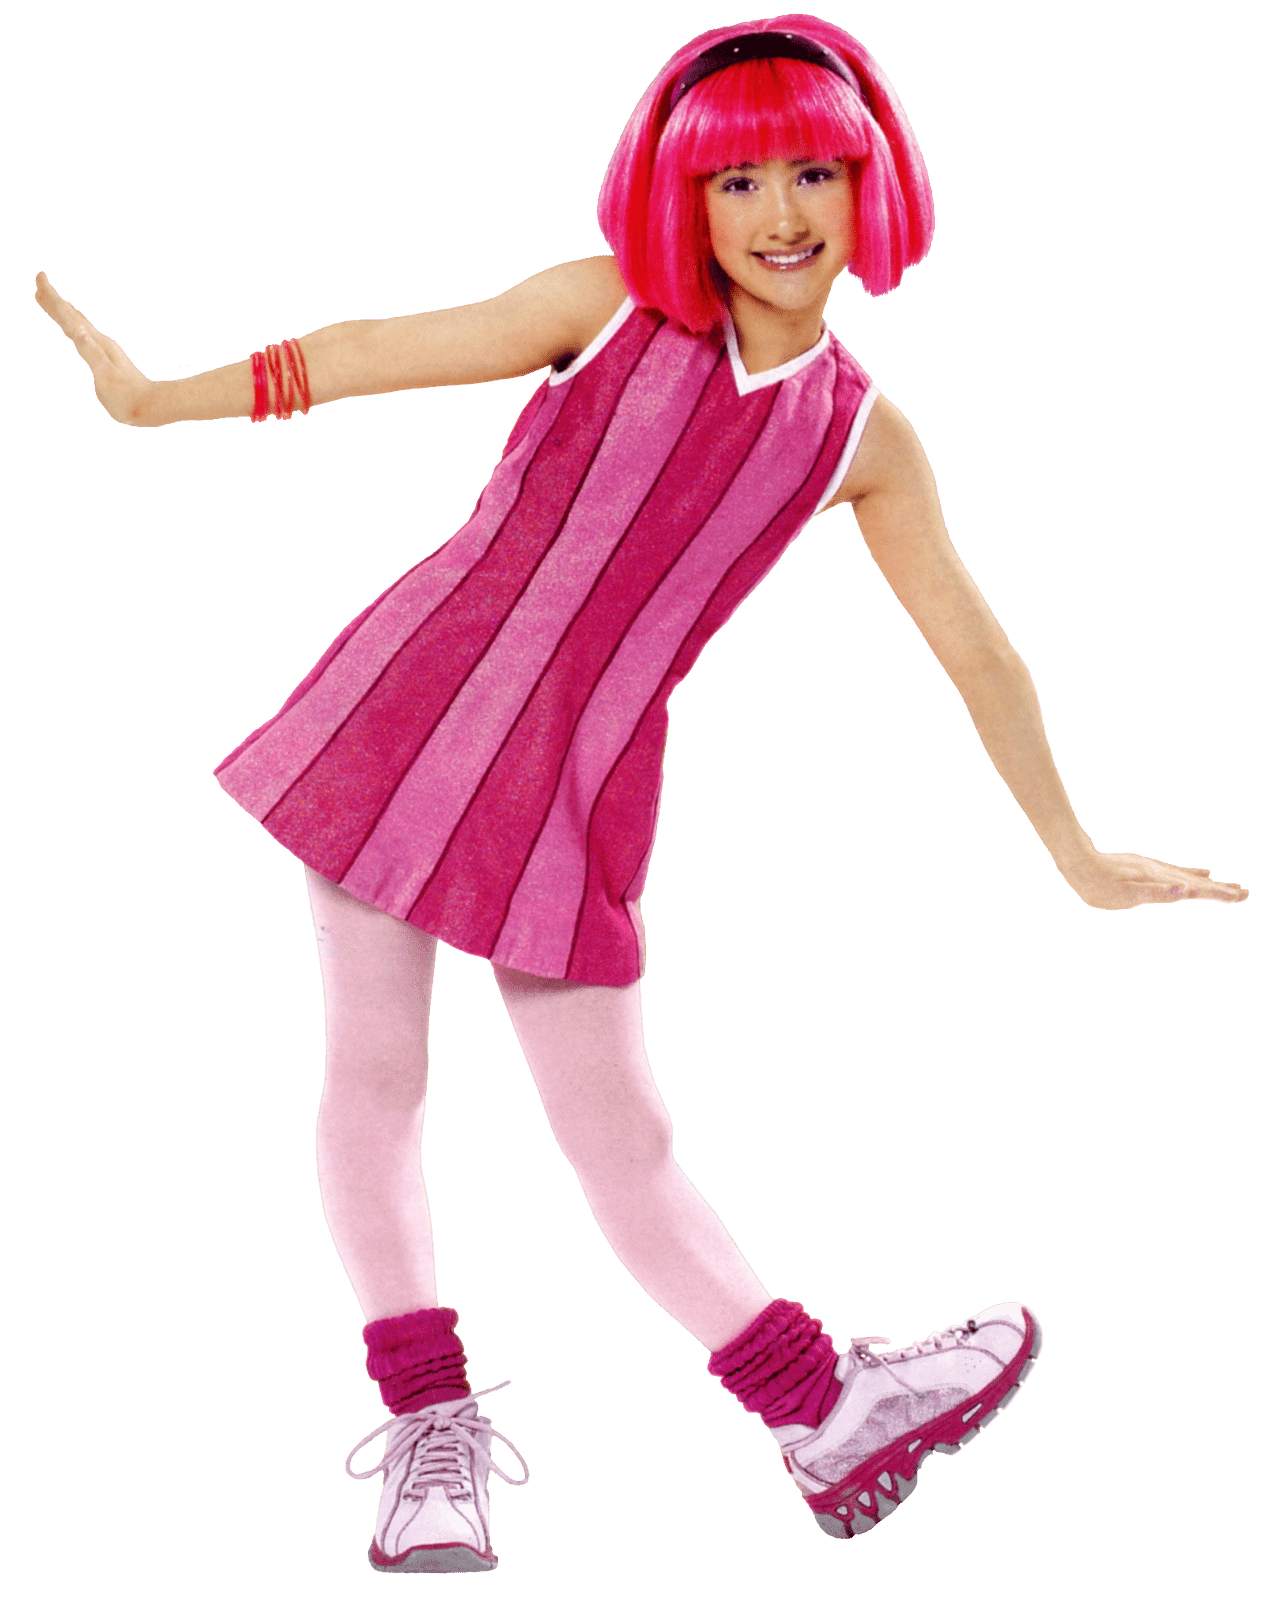 new-lazy-town-fully-nude-people-having-sex